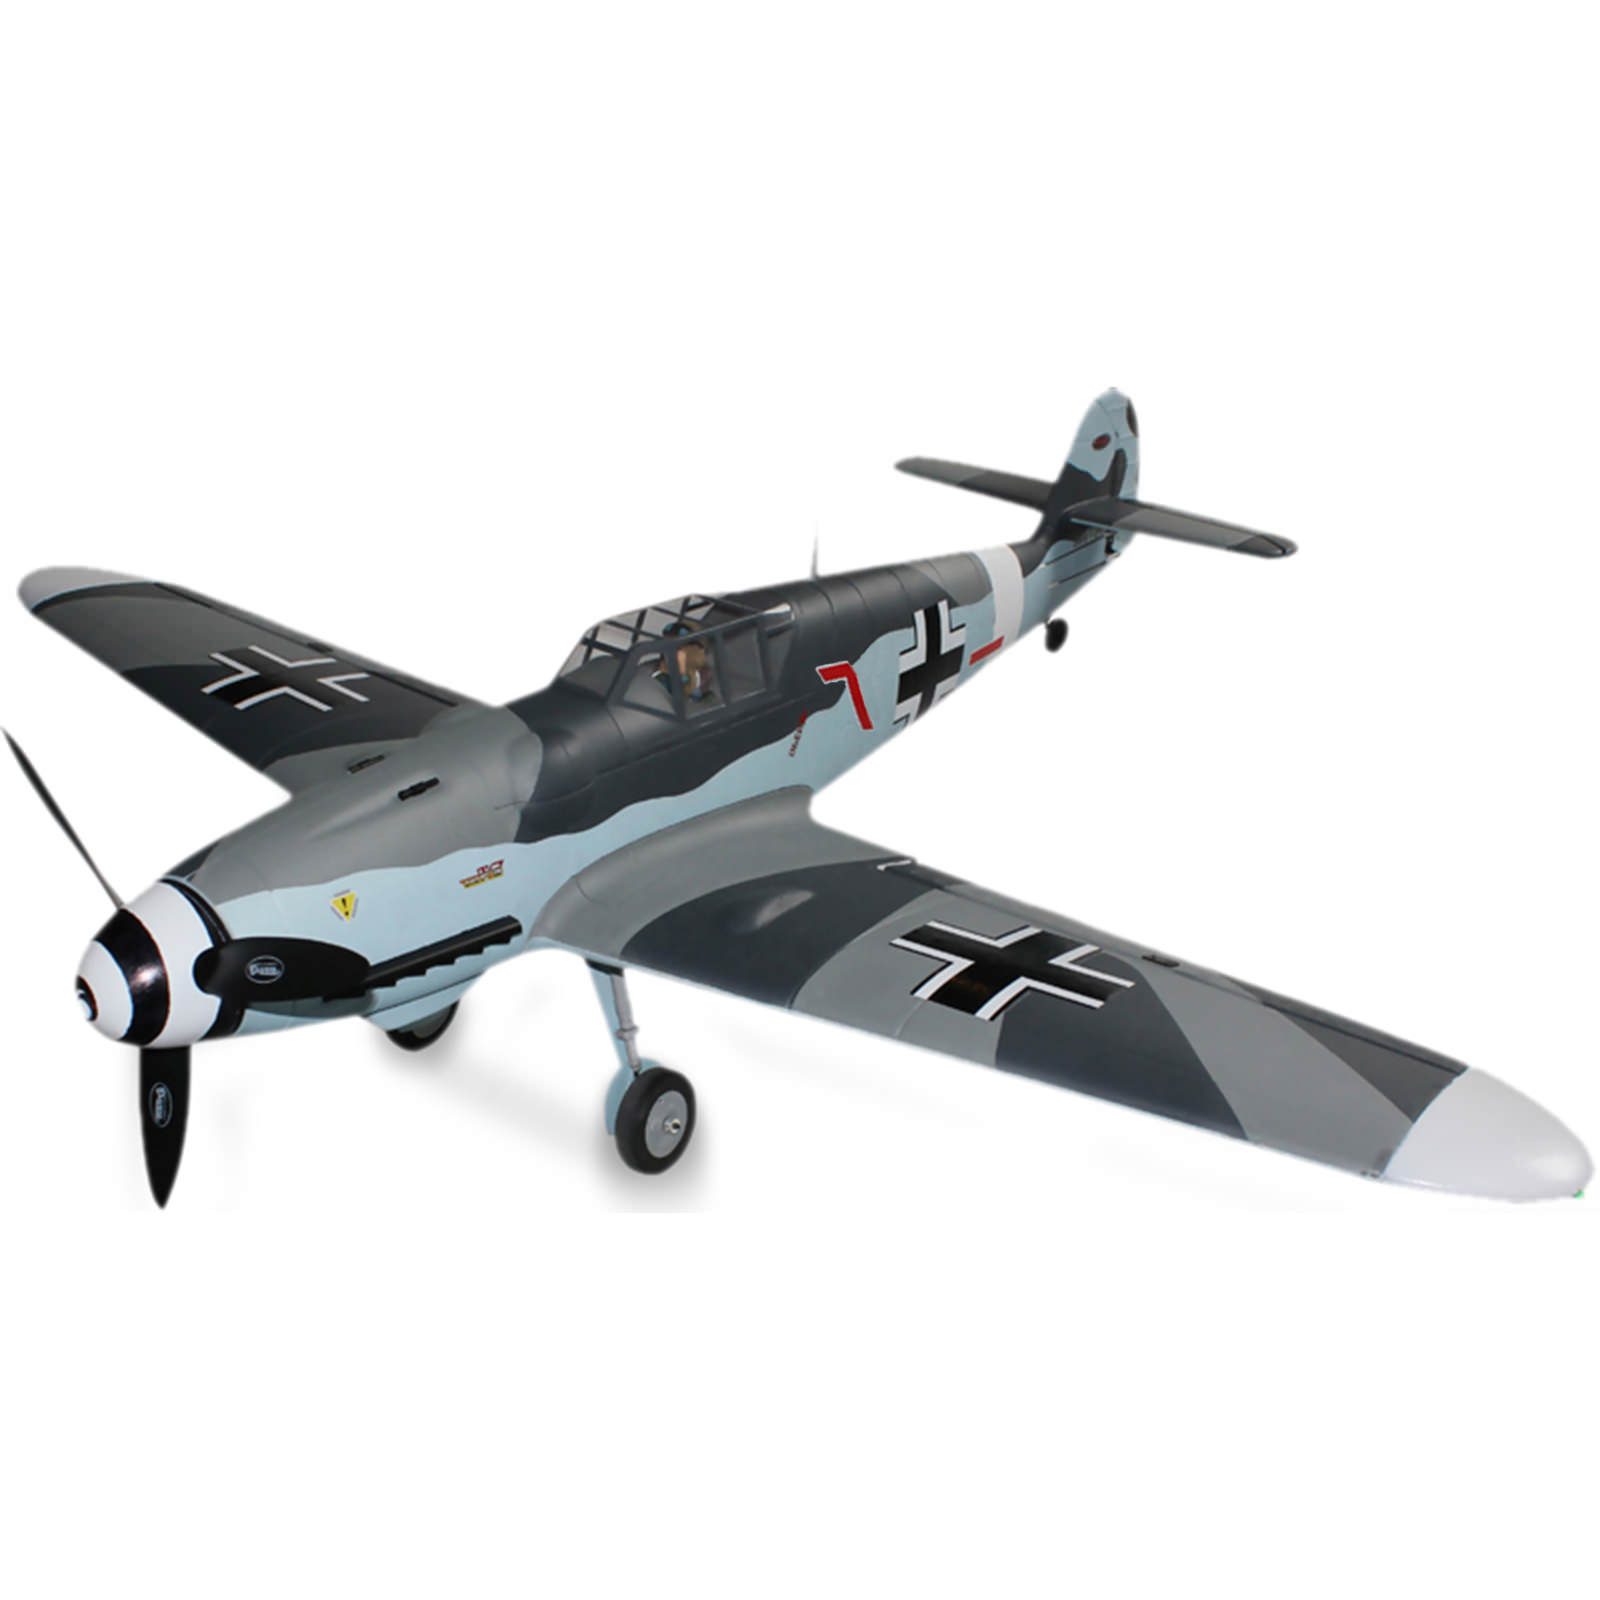 Dynam 8951 Me Bf 109 Rc Plane At Hobby Warehouse